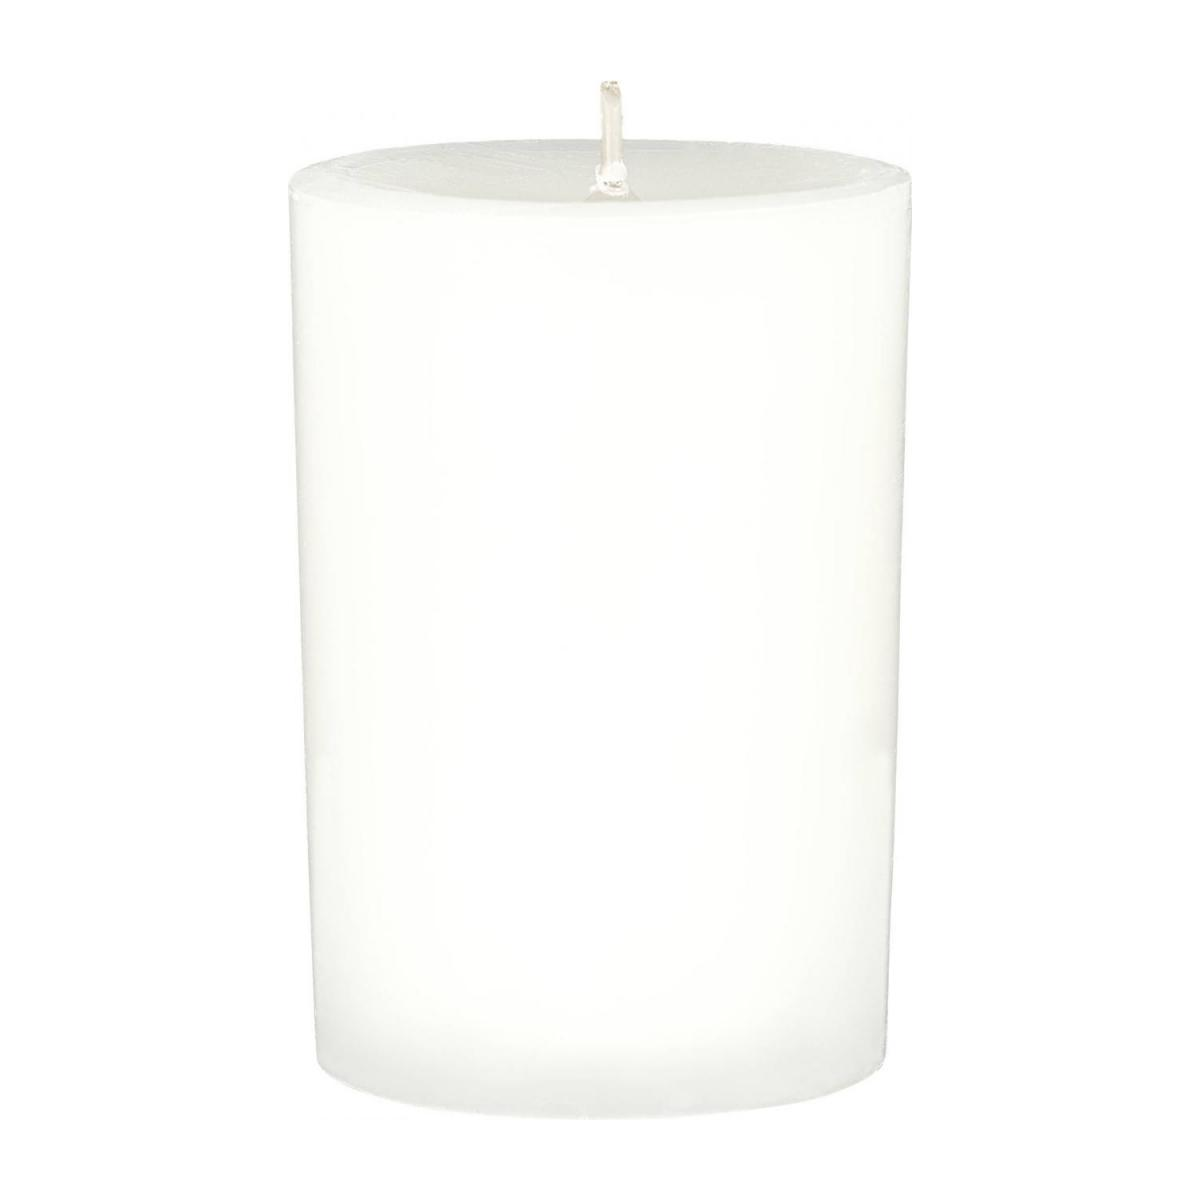 Refill for 3 medium Sandalwood scented candles, 3 x 150 g n°3